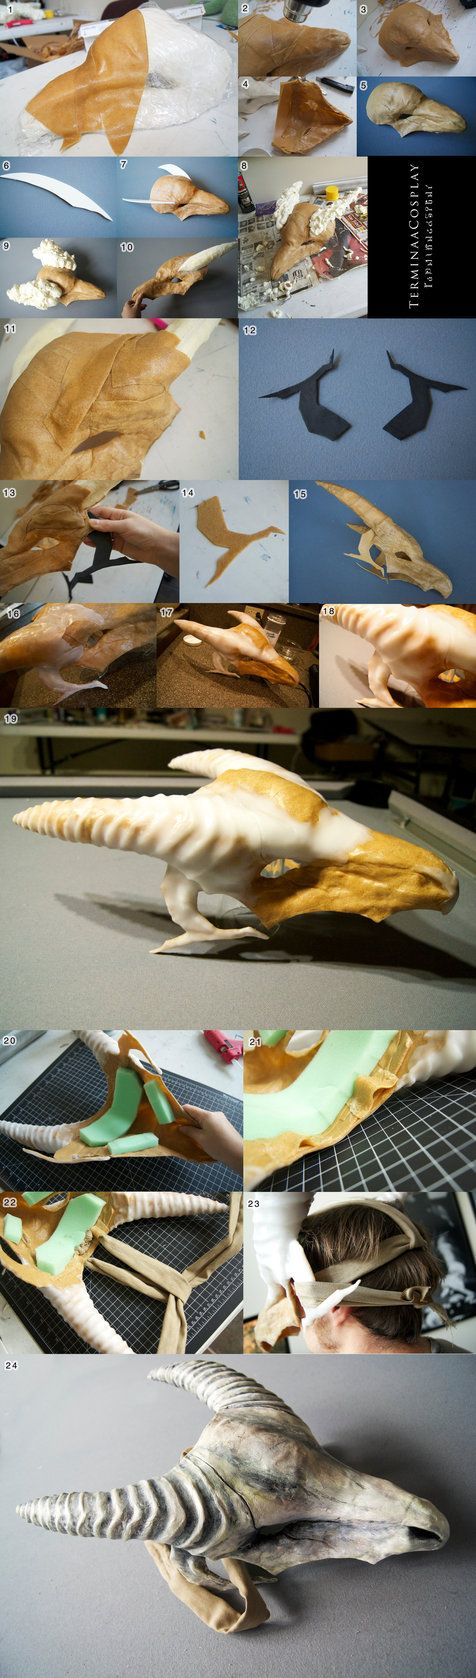 Marowak Skull Mask Tutorial- Worbla Scraps by TerminaCosplay; Awesome tutorial for working with Worbla and Friendly Plastic in general - detailed instructions